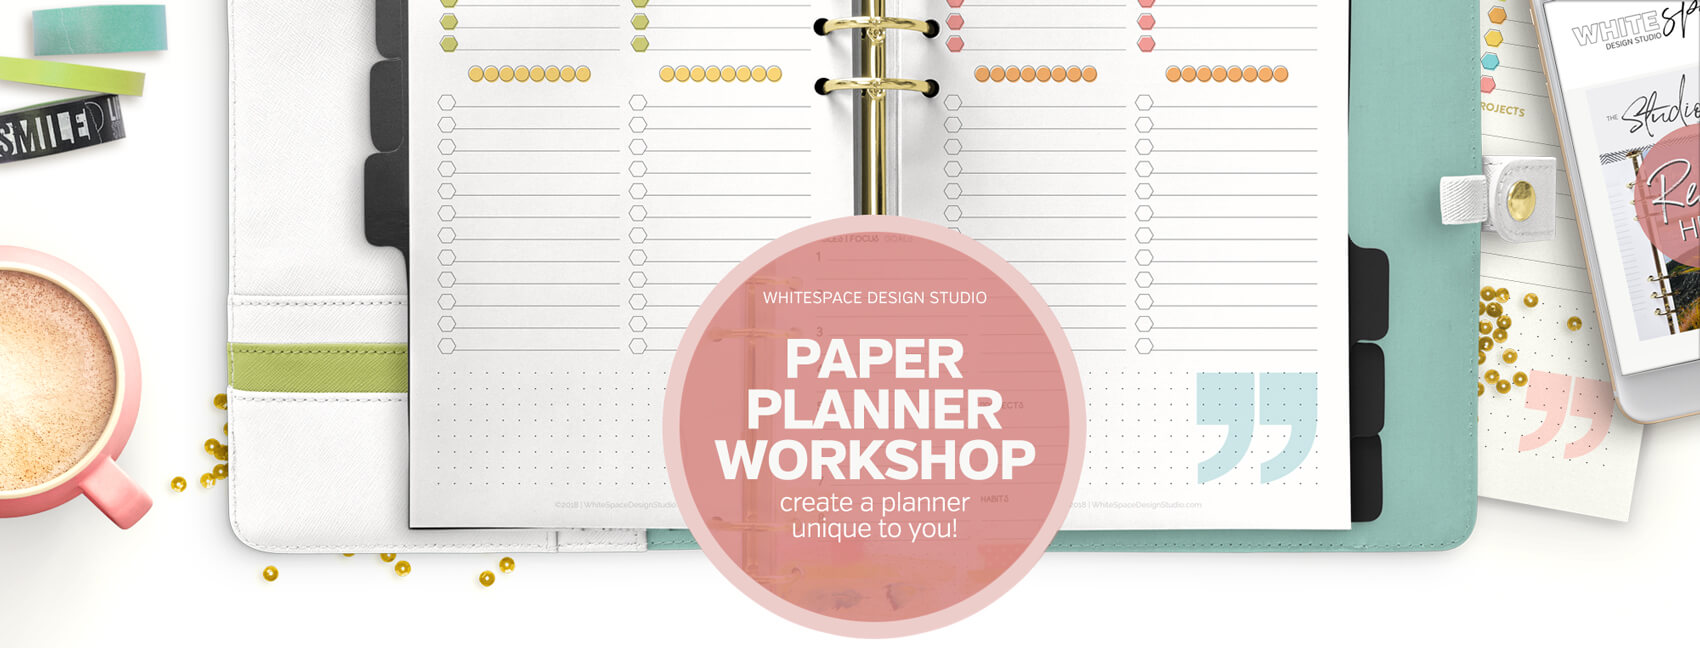 image relating to Planner Binders called THE Newbies Expert In direction of PLANNER BINDERS AND Webpage Dimensions